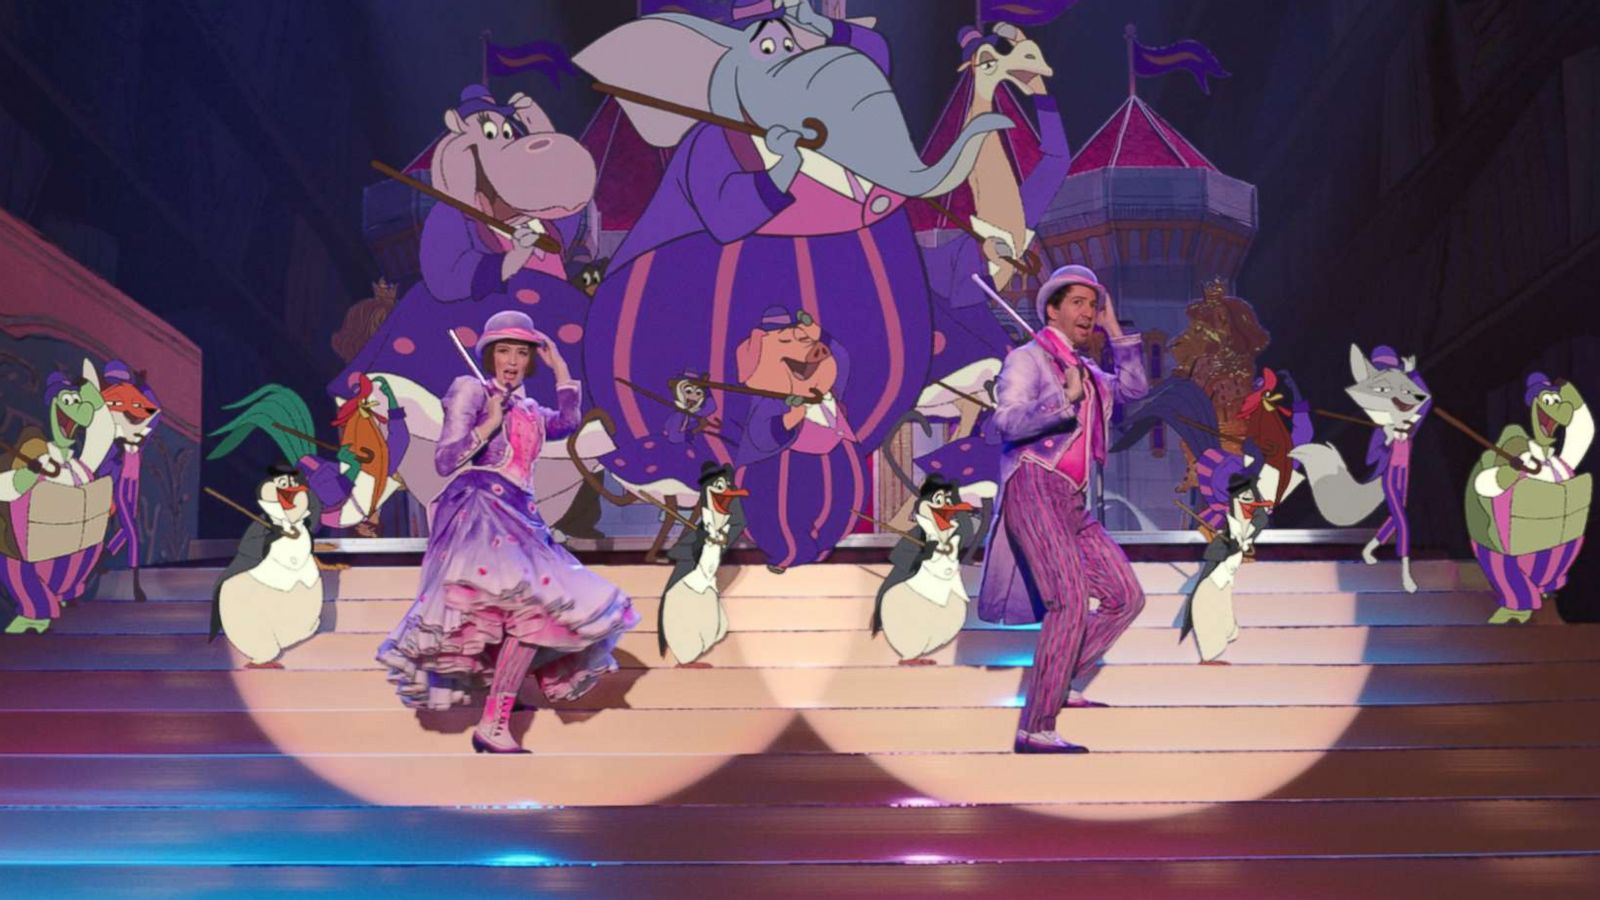 Mary Poppins Returns Pays Homage To First Film With Hand Drawn Animations Including Penguins Abc News